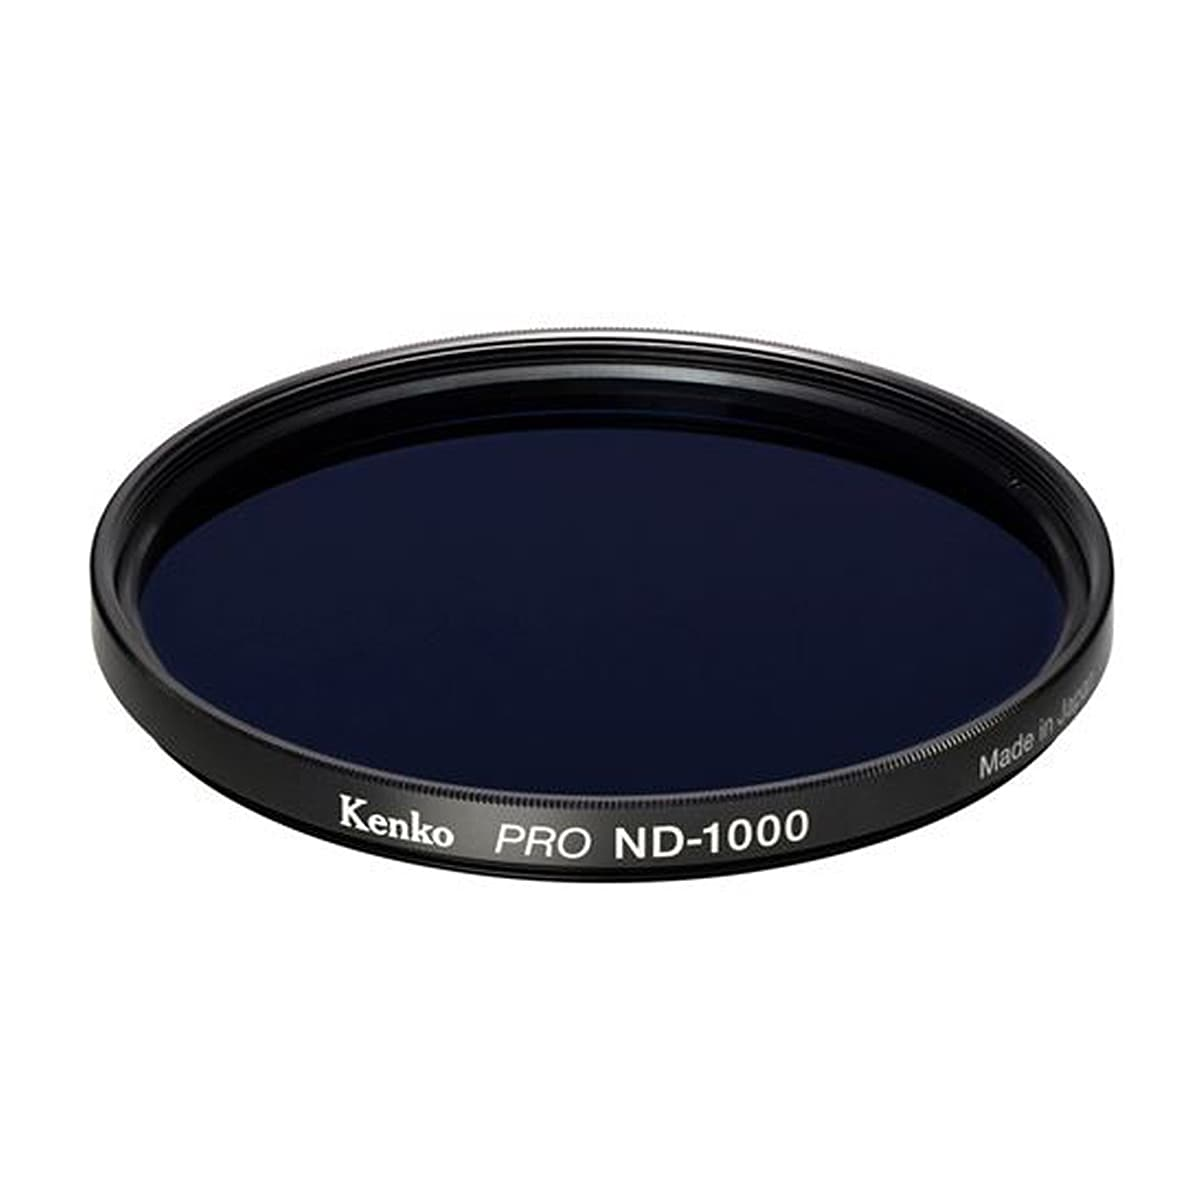 Kenko REAL PRO ND1000 77mm